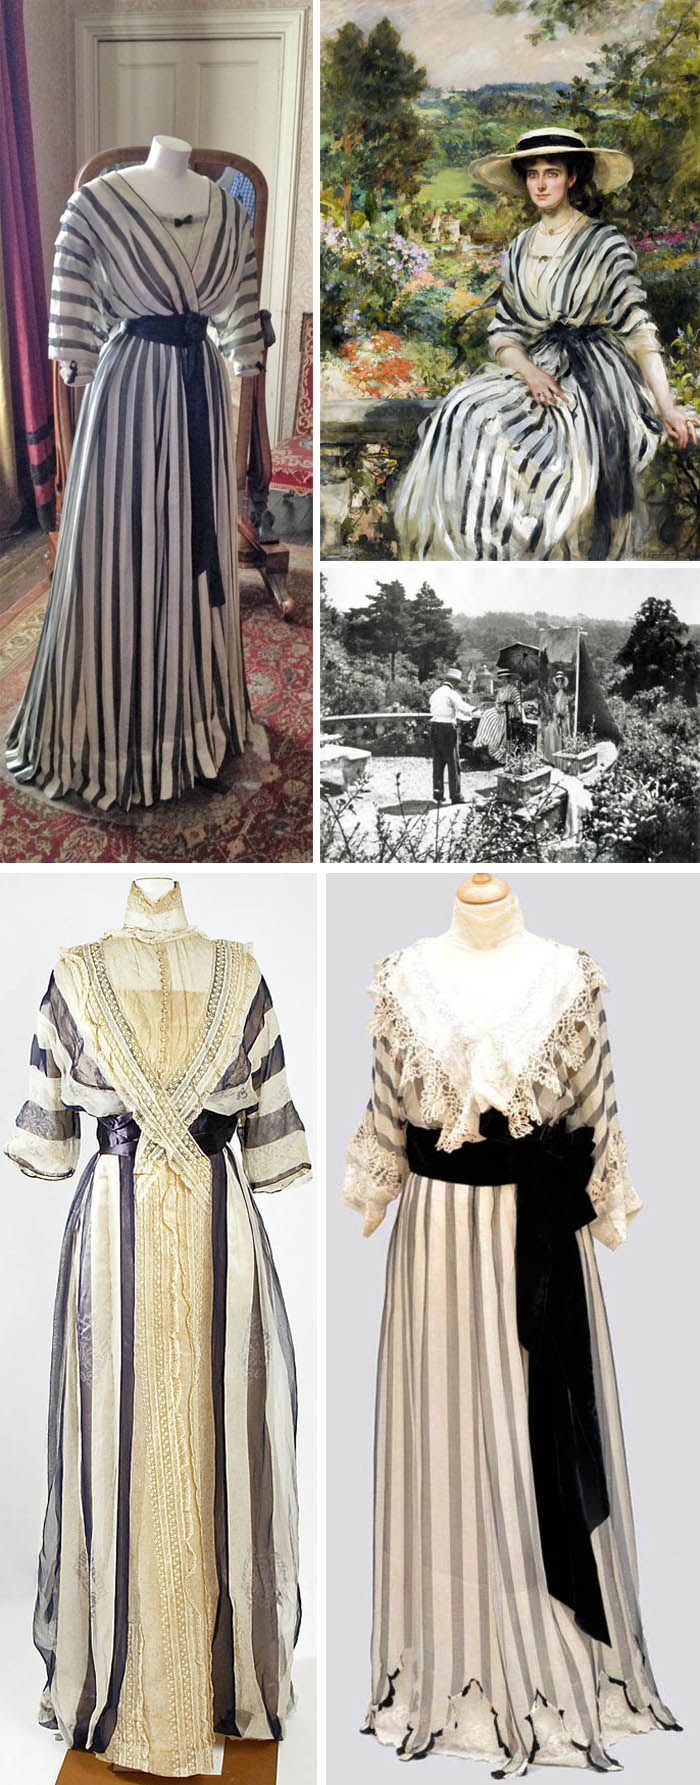 The Mystery of the Gray Striped Dresses: at top, a dress owned by Rosamund (Mrs. Edward) Hussey of Kent, England, maker unknown. Next to it is a painting by the American society portraitist JJ Shannon of Mrs. Hussey wearing the dress, shortly after her marriage in 1900. Below that, a photo of the painting being made! (Courtesy UK National Trust.) Bottom, two similar dresses by Jeanne Paquin. Left, 1912 (owned by the Met) and right, 1910 (sold by Auctions Eve). Both silk.